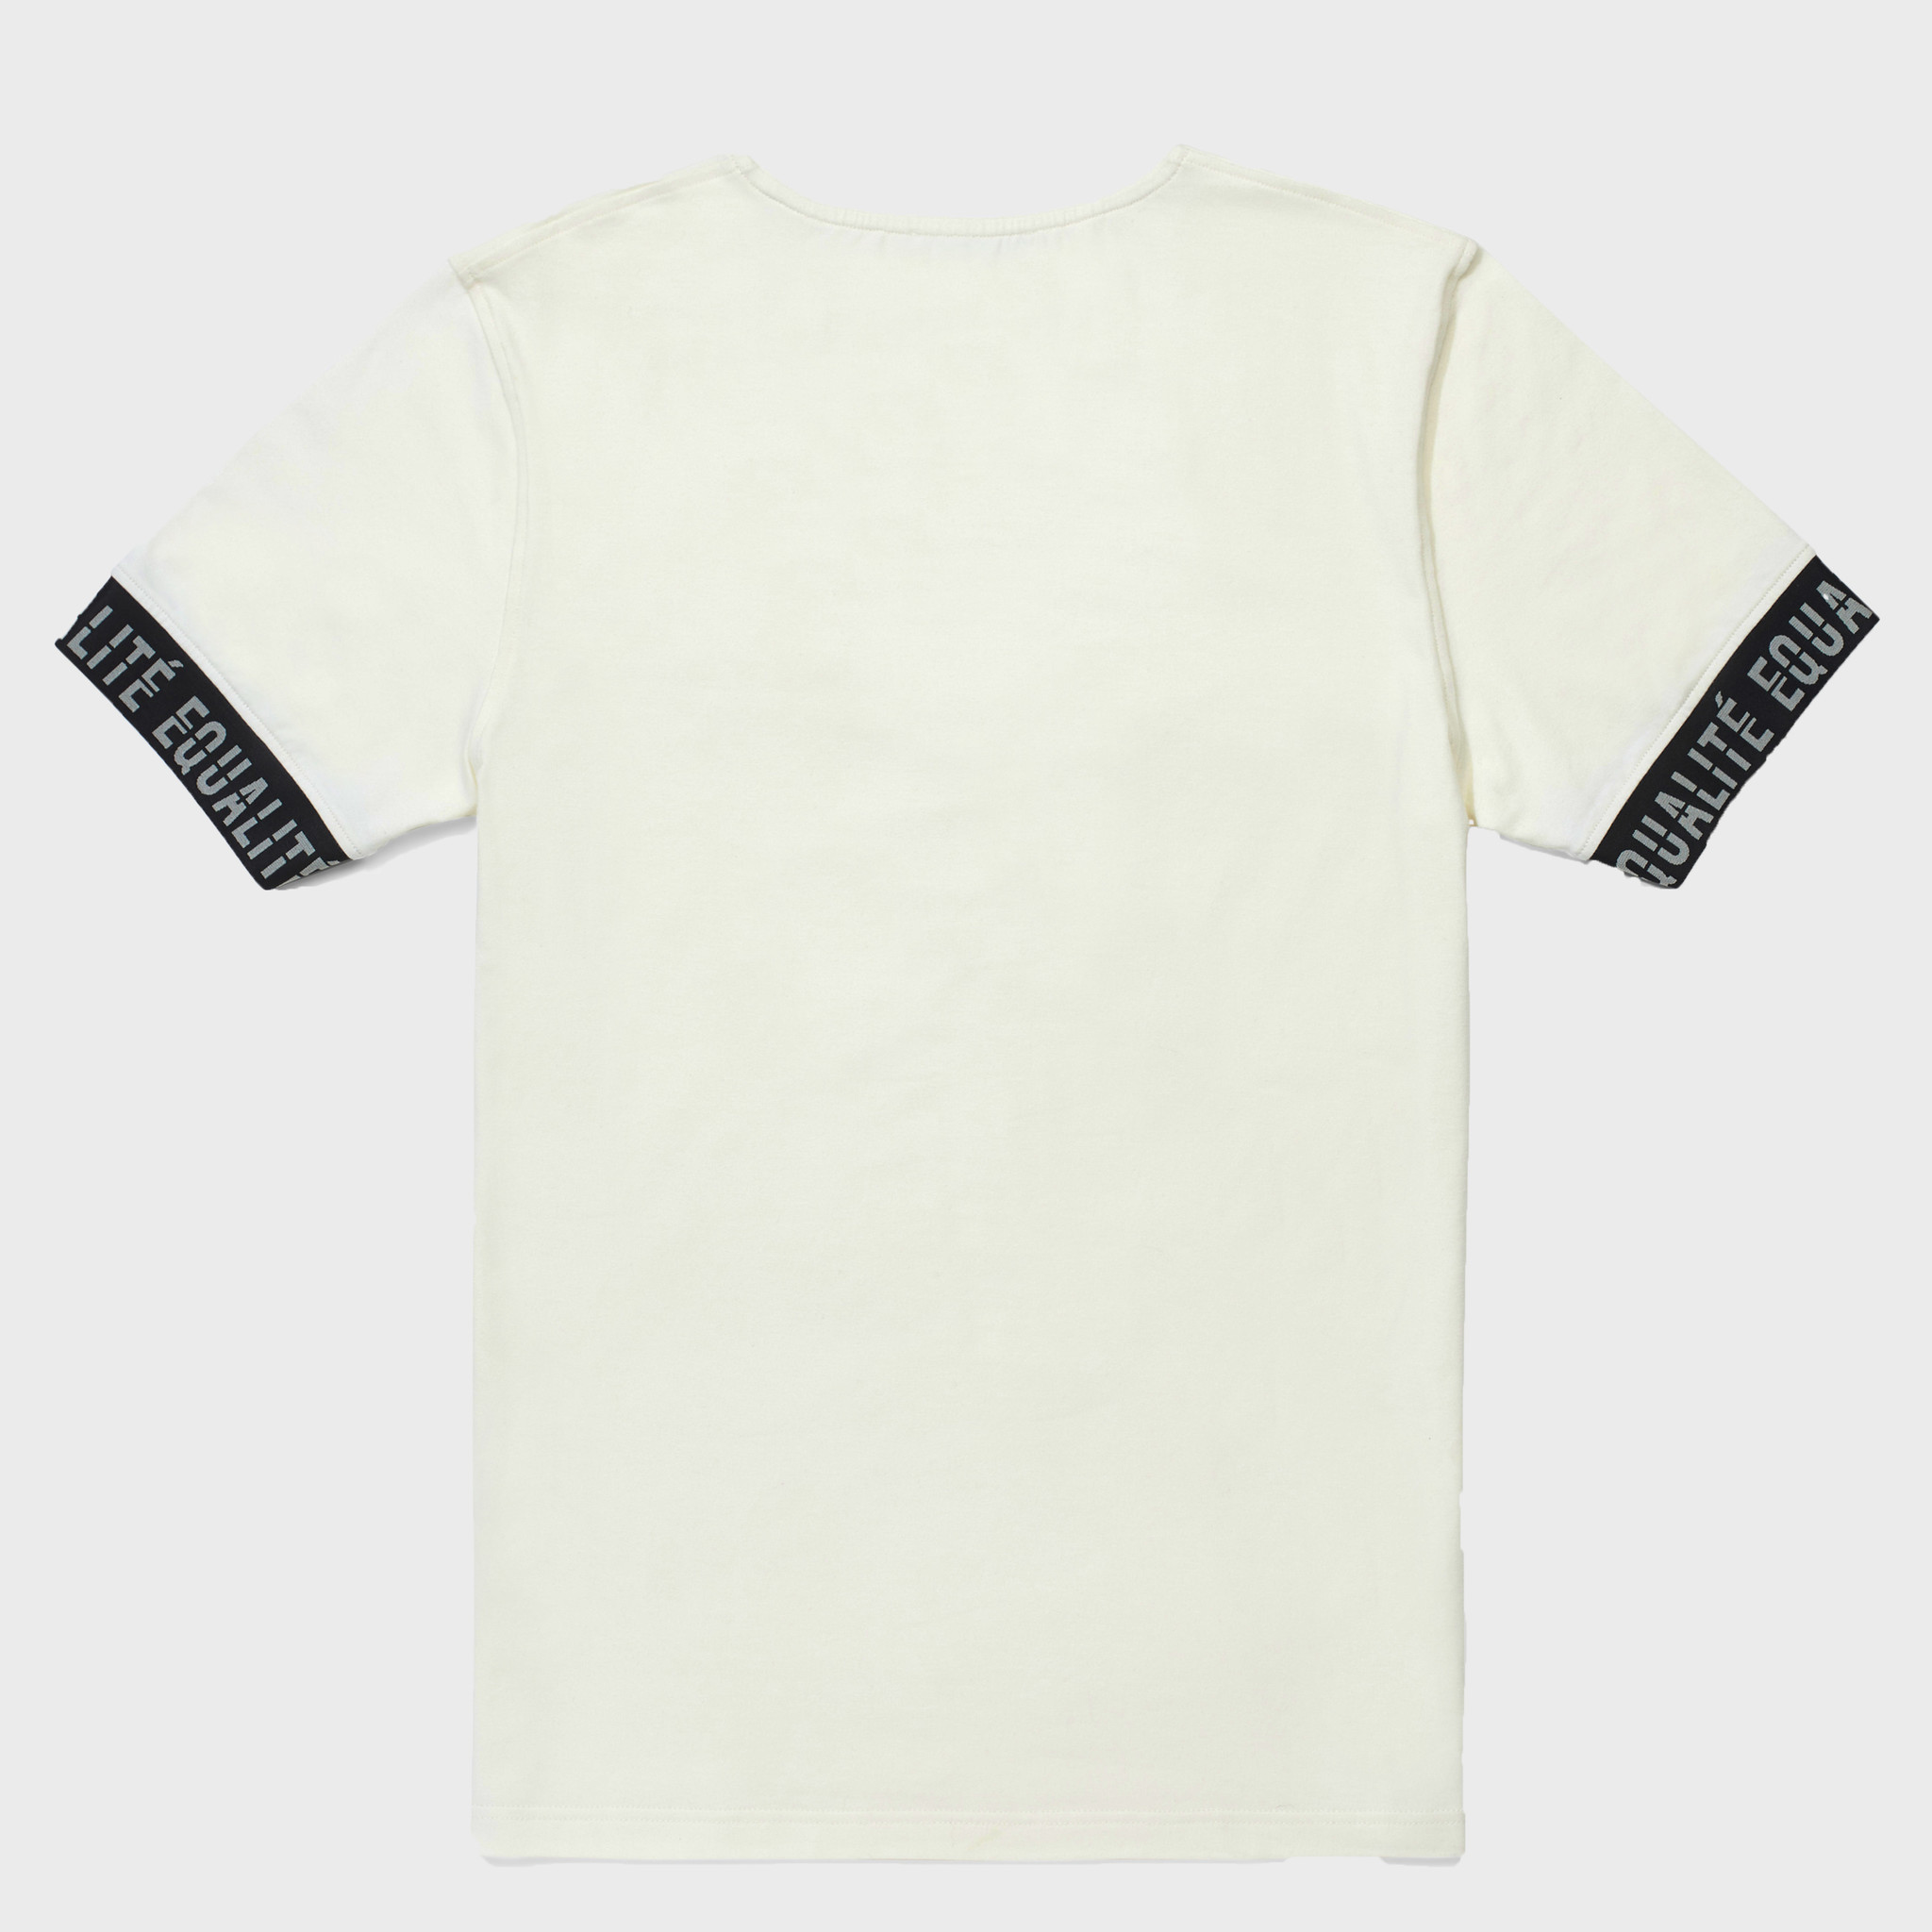 BAND TEE OFF-WHITE-2